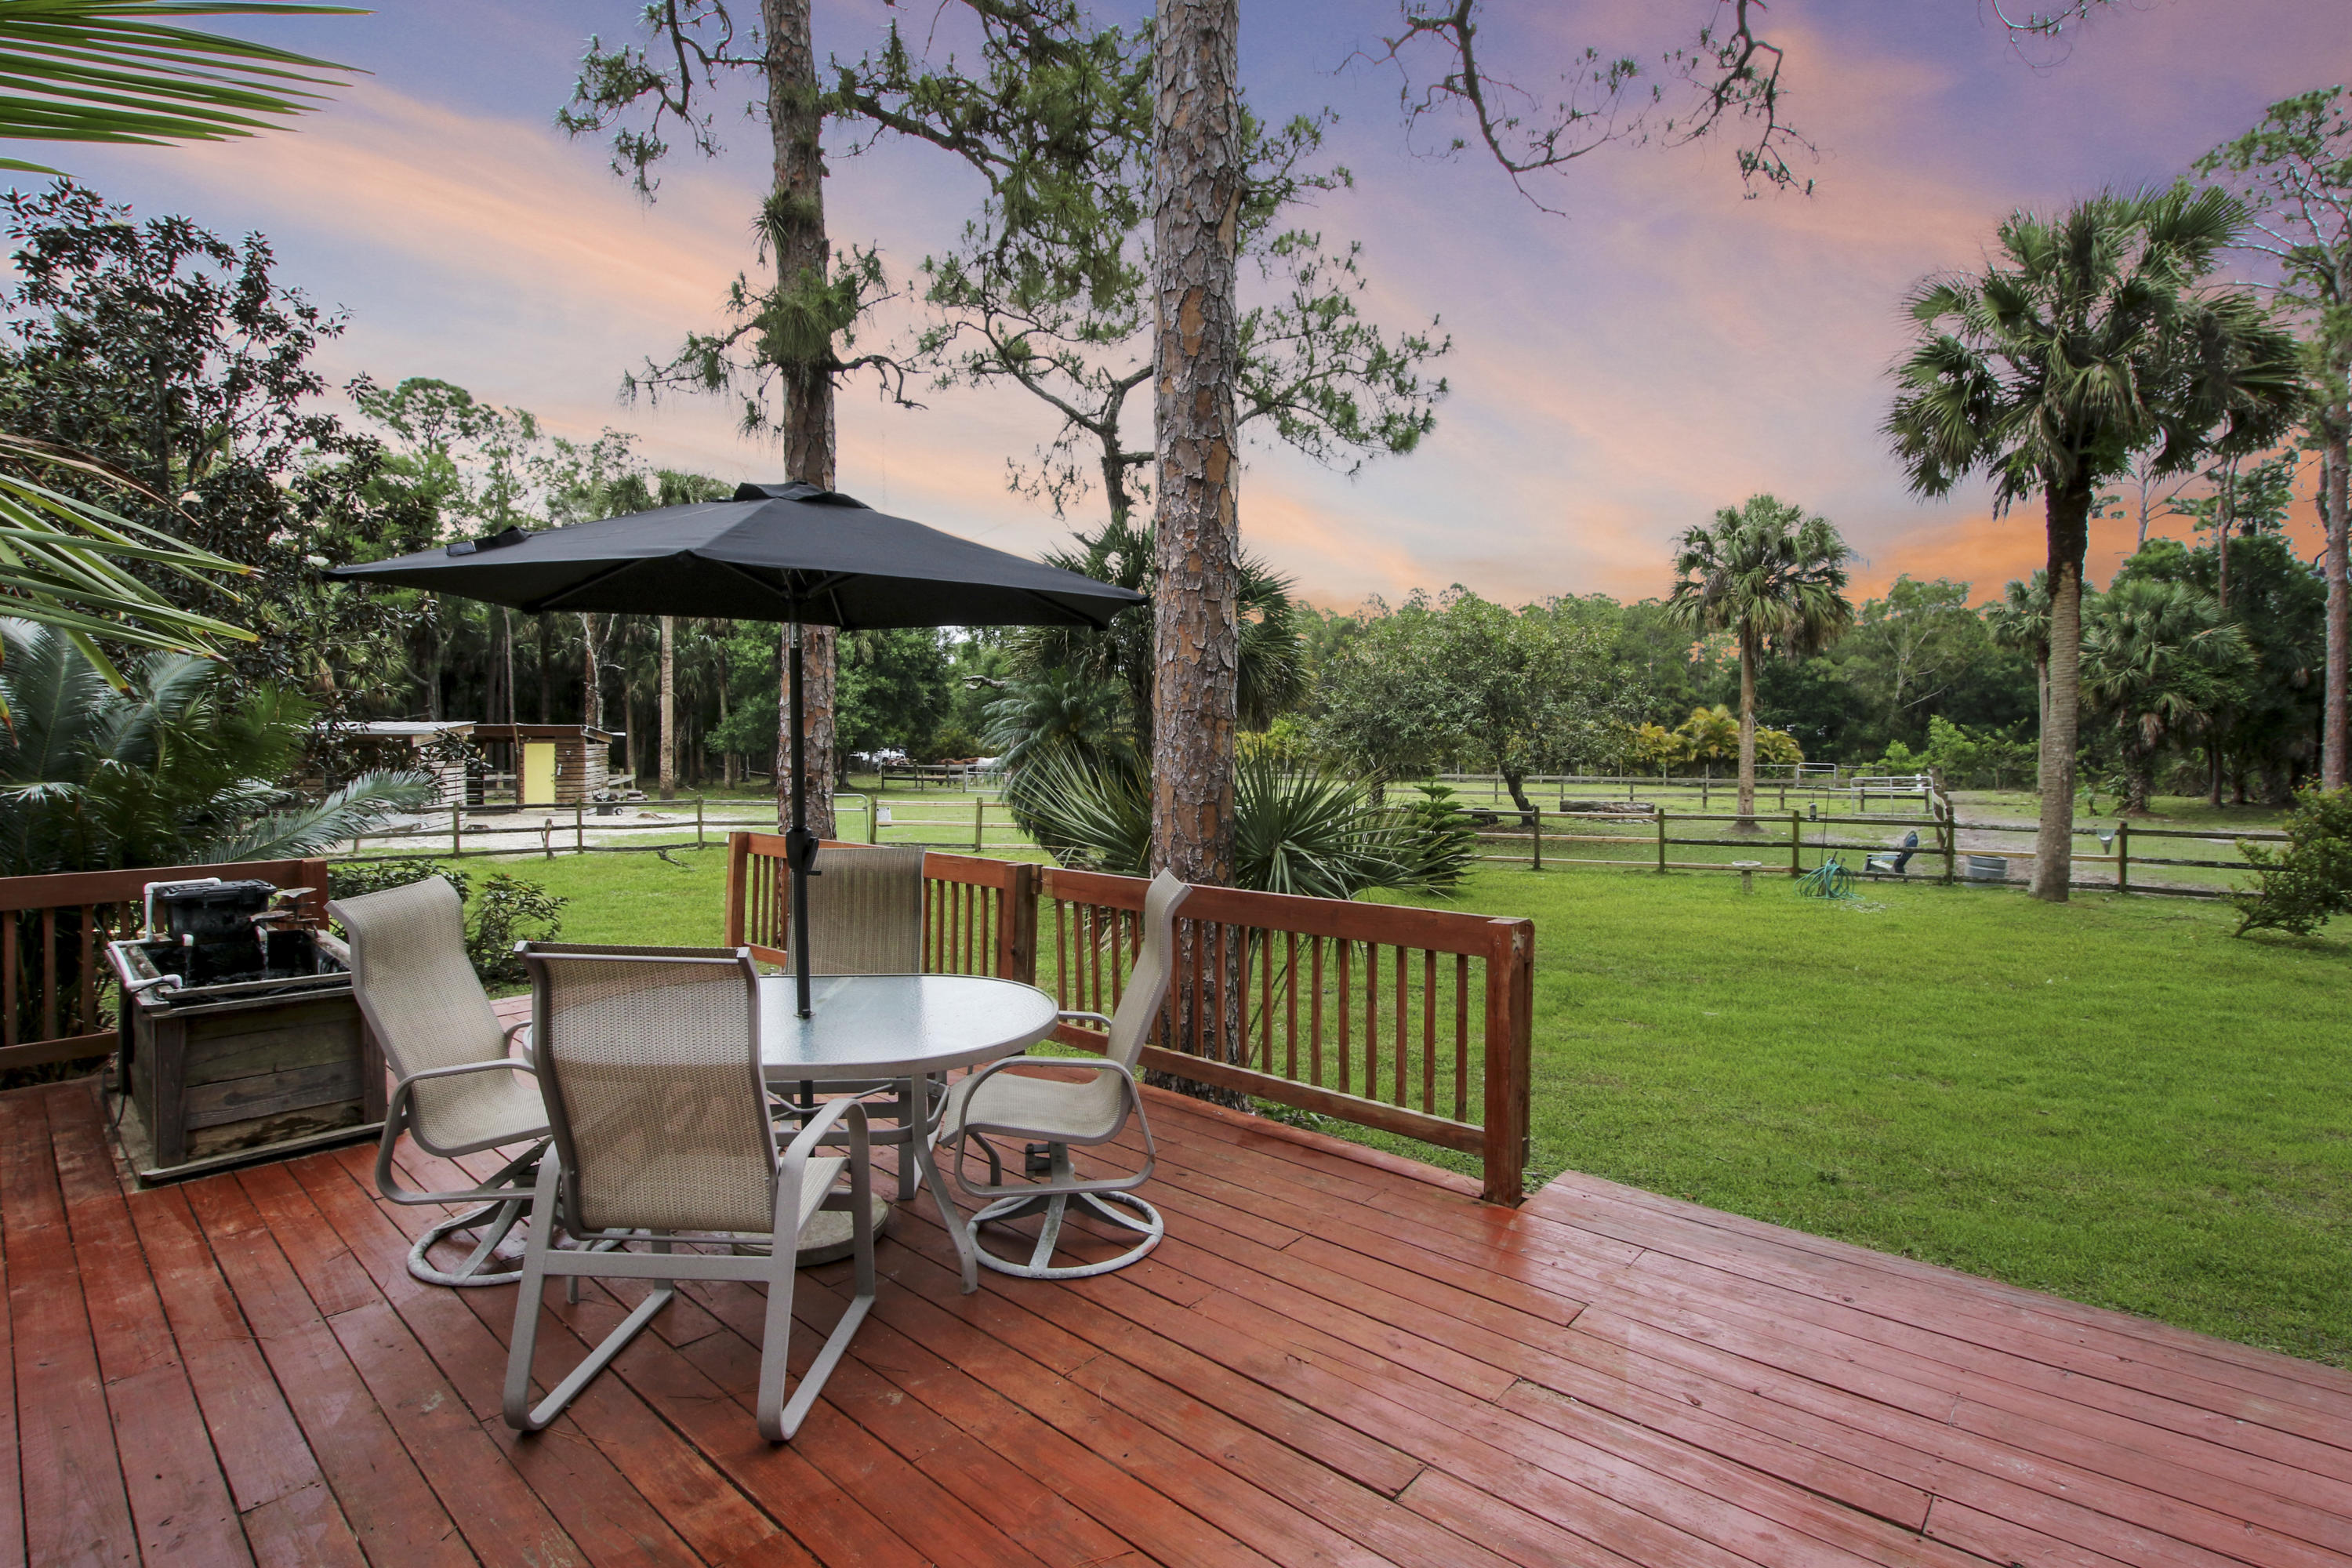 A DREAM COME TRUE for those looking for peace & tranquility on this stunning 5 acre property. Feel worlds away surrounded by the beauty of nature & 20 exotic fruit trees, yet just minutes from parks, shops, restaurants, beach & town. Built in the 1960's, this home exudes charm, warmth & has withstood the test of time. As each owner has upgraded, the original charm & Dade Pine floors/ ceilings remain & are beautiful. Enjoy 4 bedrooms, plus a den & 4 full baths. Master, 2nd bedroom & small studio/den are on 1st floor & 2nd story has 2 bedrooms & 2 full baths. Your horses will love their 6 stall barn w/water & power & 3 shady paddocks to roam & Ag Exemption = Lower taxes. Take a trail ride to Riverbend or stroll 2 blocks to live music next to the fire at Taylor's Farmhouse Cafe! More HERE.. This property is dry! No lake here taking up 1/2 your property. Your seasonal fruits, nuts and herbs include Mango, Ackee, Langdon, Rose apple, Wax apple, Pond apple, Macadamia nut, Brazilian cherry, Star fruit, Bay rum, Kafir Lime, Tamarind, Lemongrass, Awapuhi, Calamondin, Monstera deliciosa, Miracle fruit, Passion fruit & Lemon! Additional upgrades to this absolutely adorable home are freshly painted hardi-plank siding, new AC and all new plumbing under house.   Turn key boarding business also available with income opportunities which includes branded website. Note lower taxes as property currently has Agricultural exemption. New owner will need to reapply for homestead and ag exemption by March 2022.   Additional upgrades to this absolutely adorable home are hardi-plank siding, exterior has been freshly painted, new AC/heat condenser (2020). Also, there are two RV hooks ups on property.